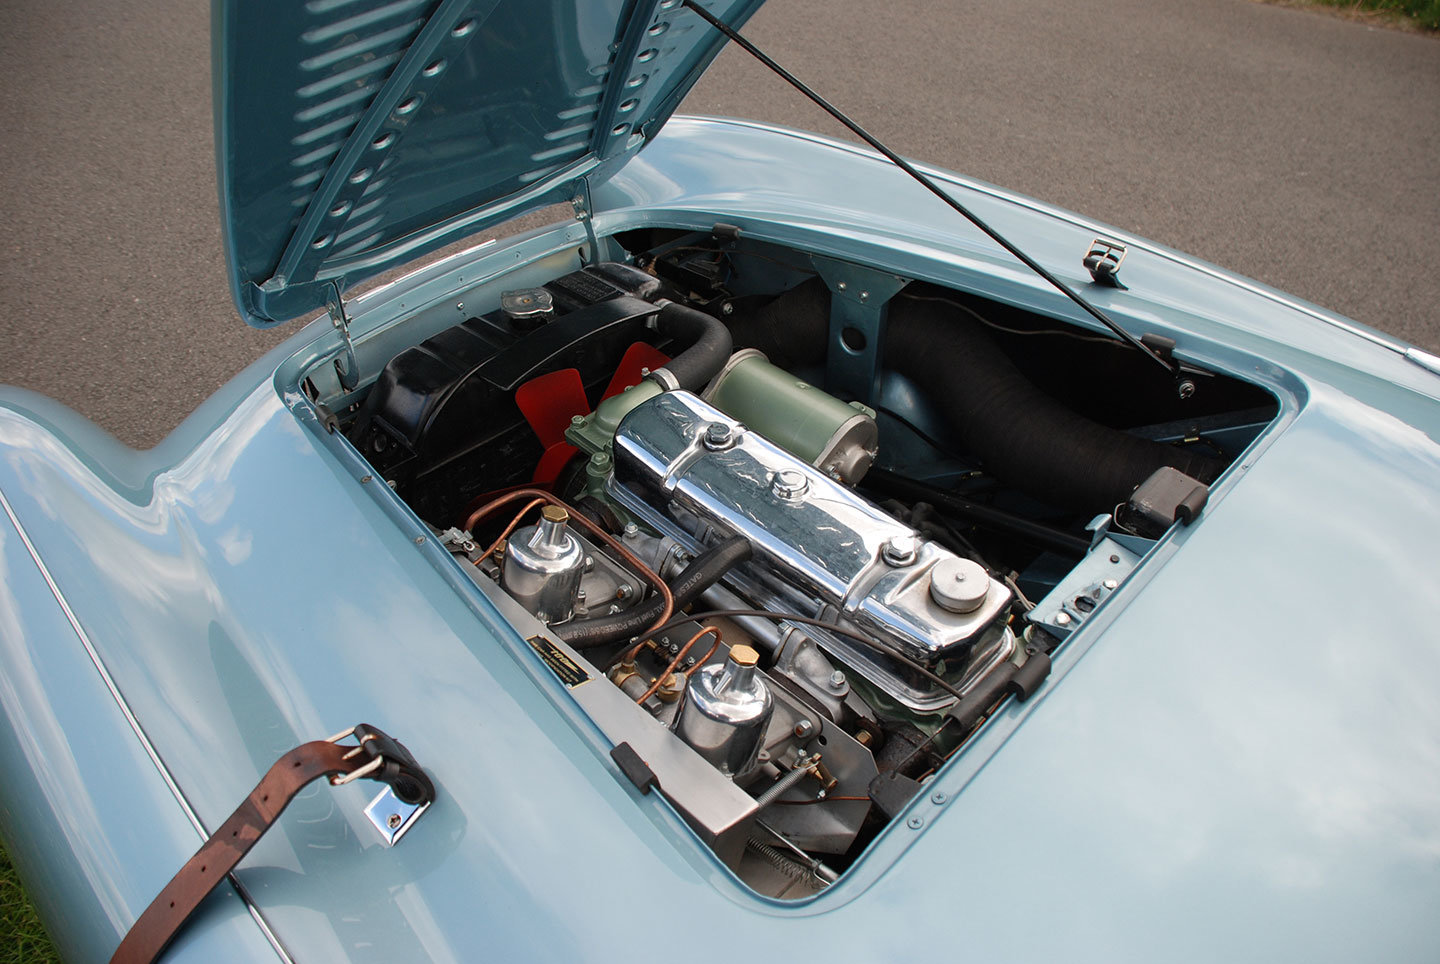 1955 Austin Healey 100/4 BN2 M Specification For Sale (picture 6 of 10)